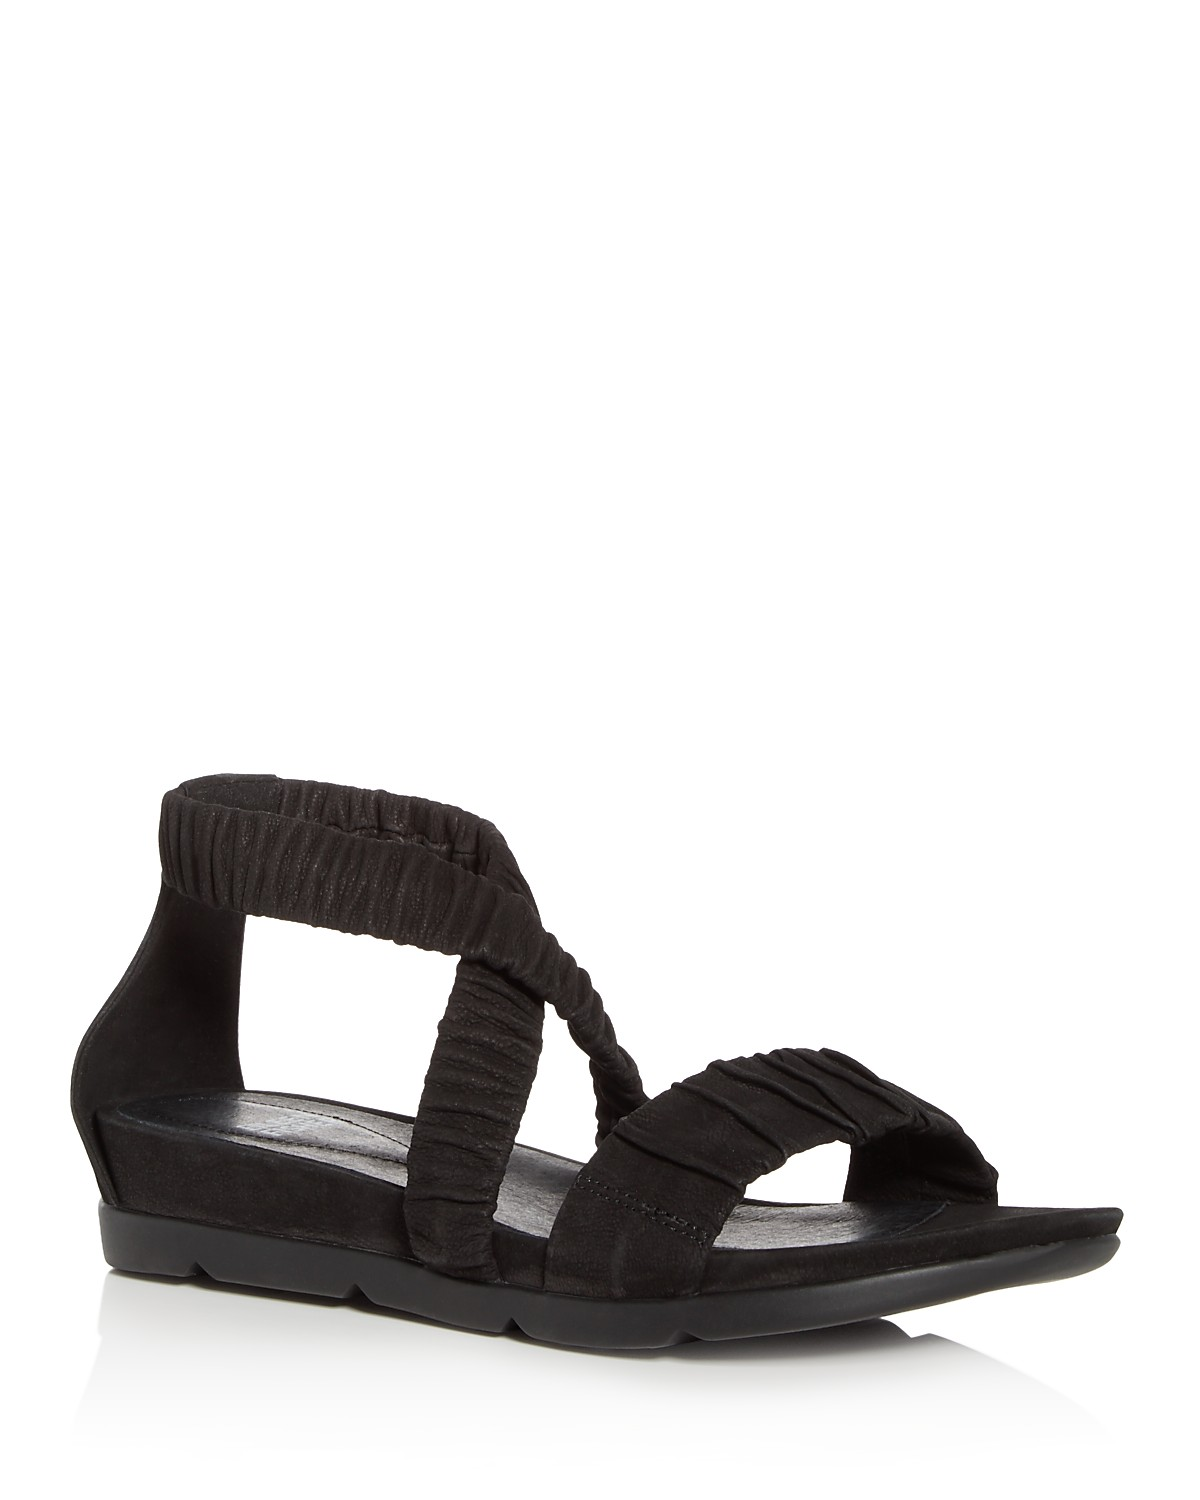 Eileen Fisher Women's Dylan Tumbled Nubuck Leather Demi Wedge Sandals gqYL7ZR3D3